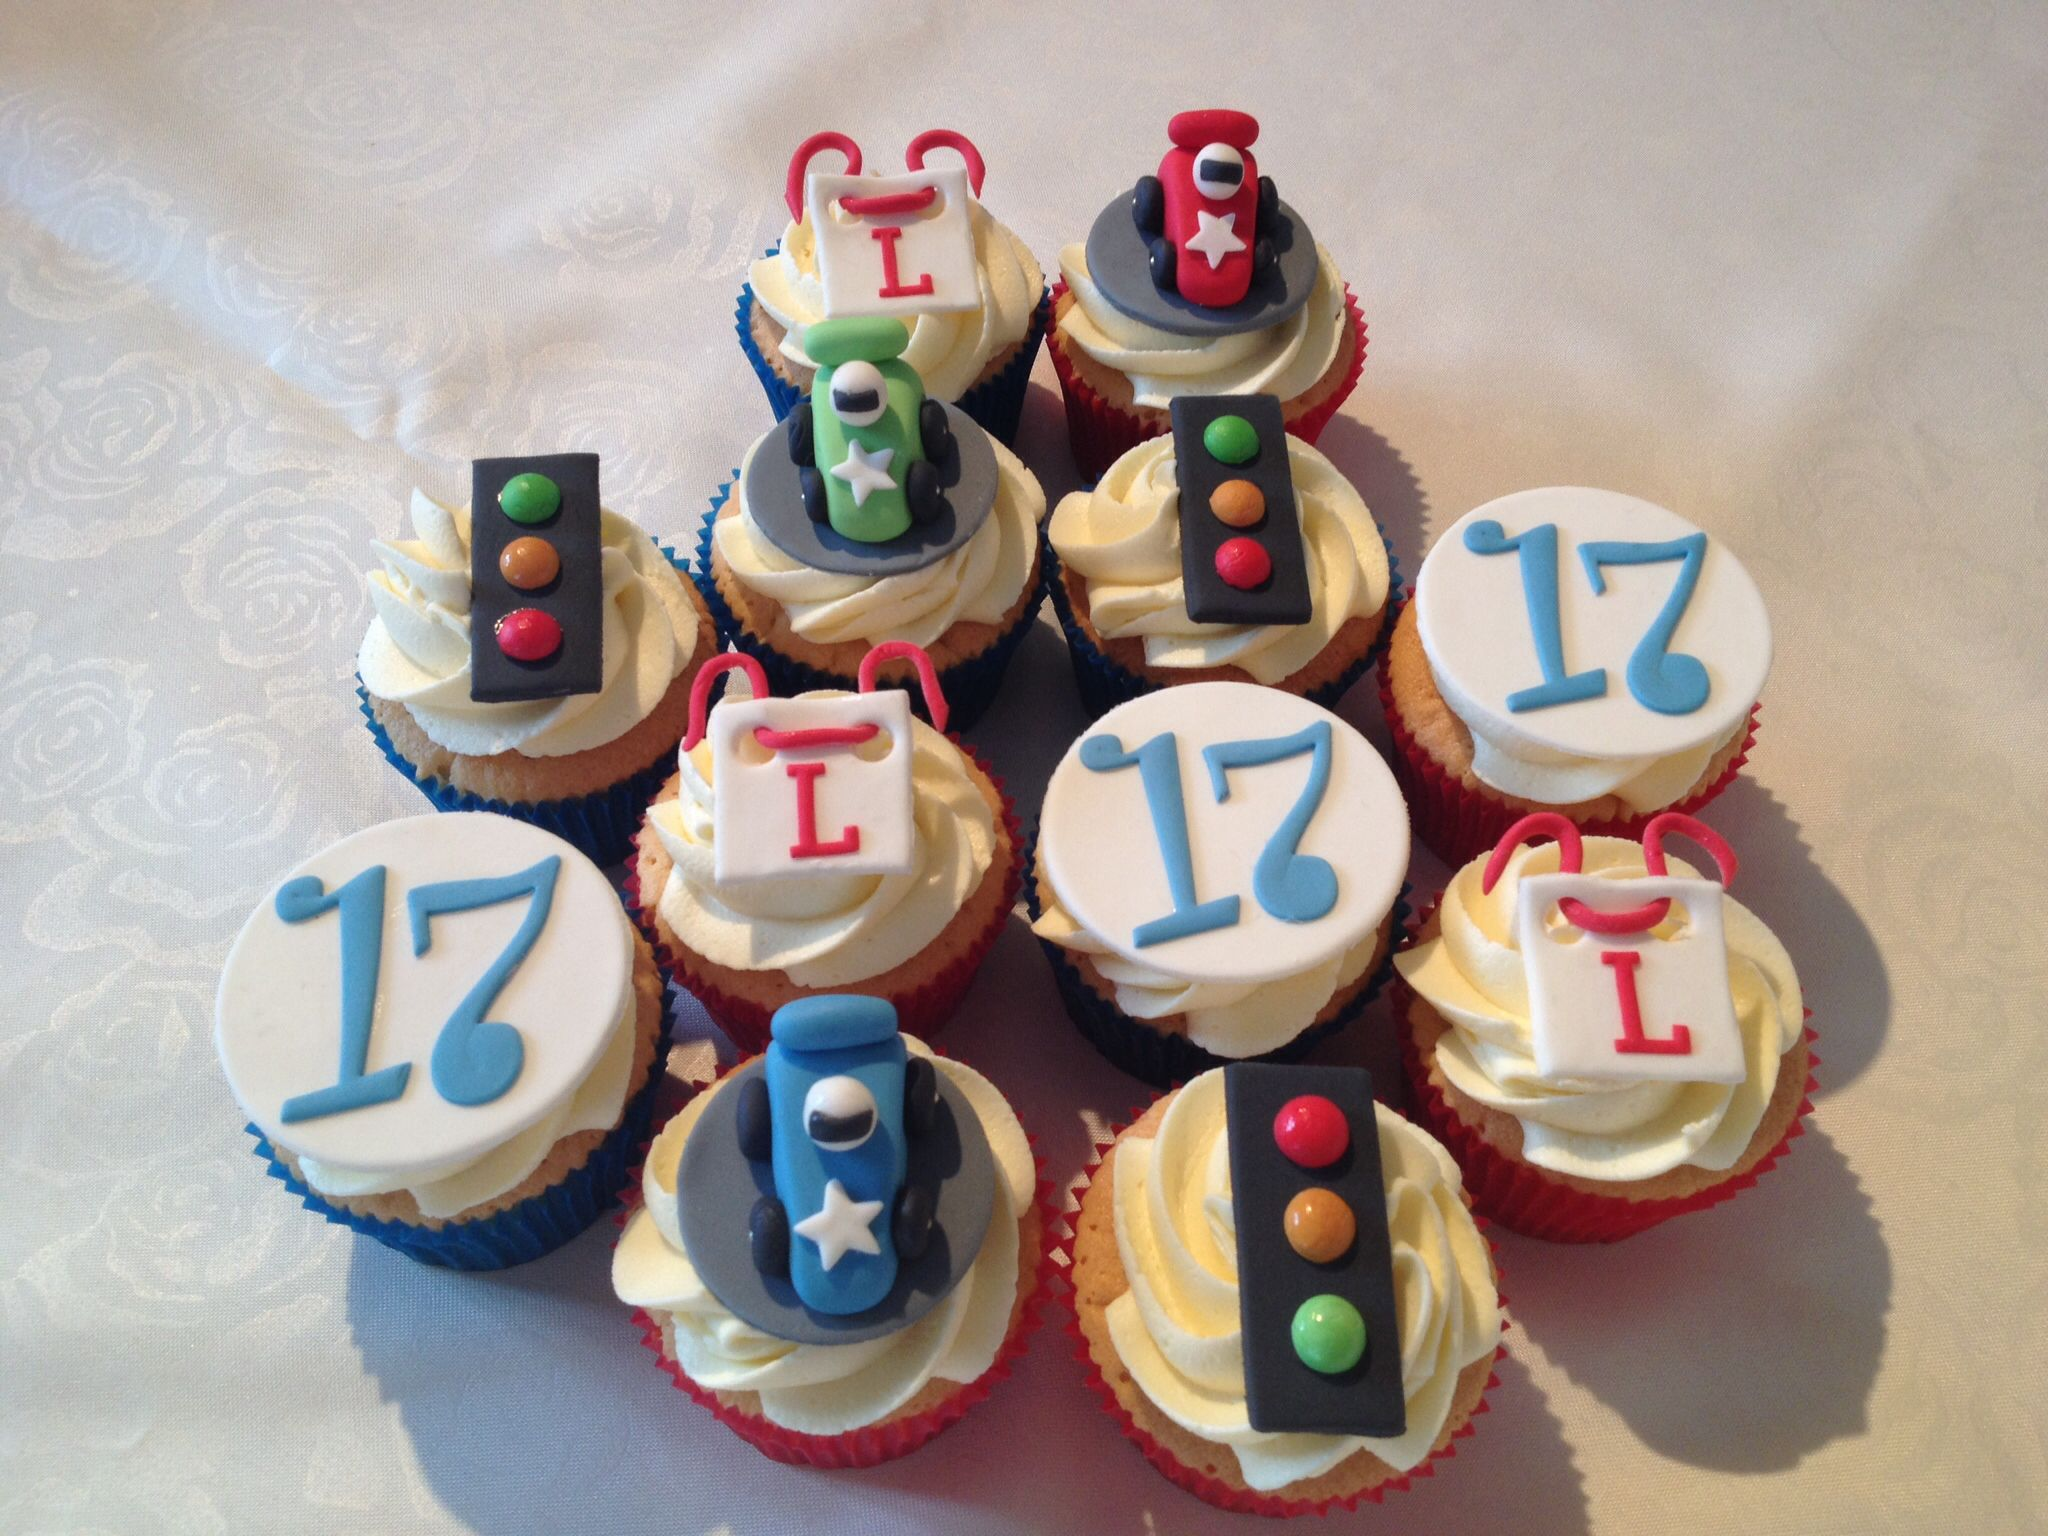 Our Oldest Grandson Turned 17 On The 26th With Images Cupcakes